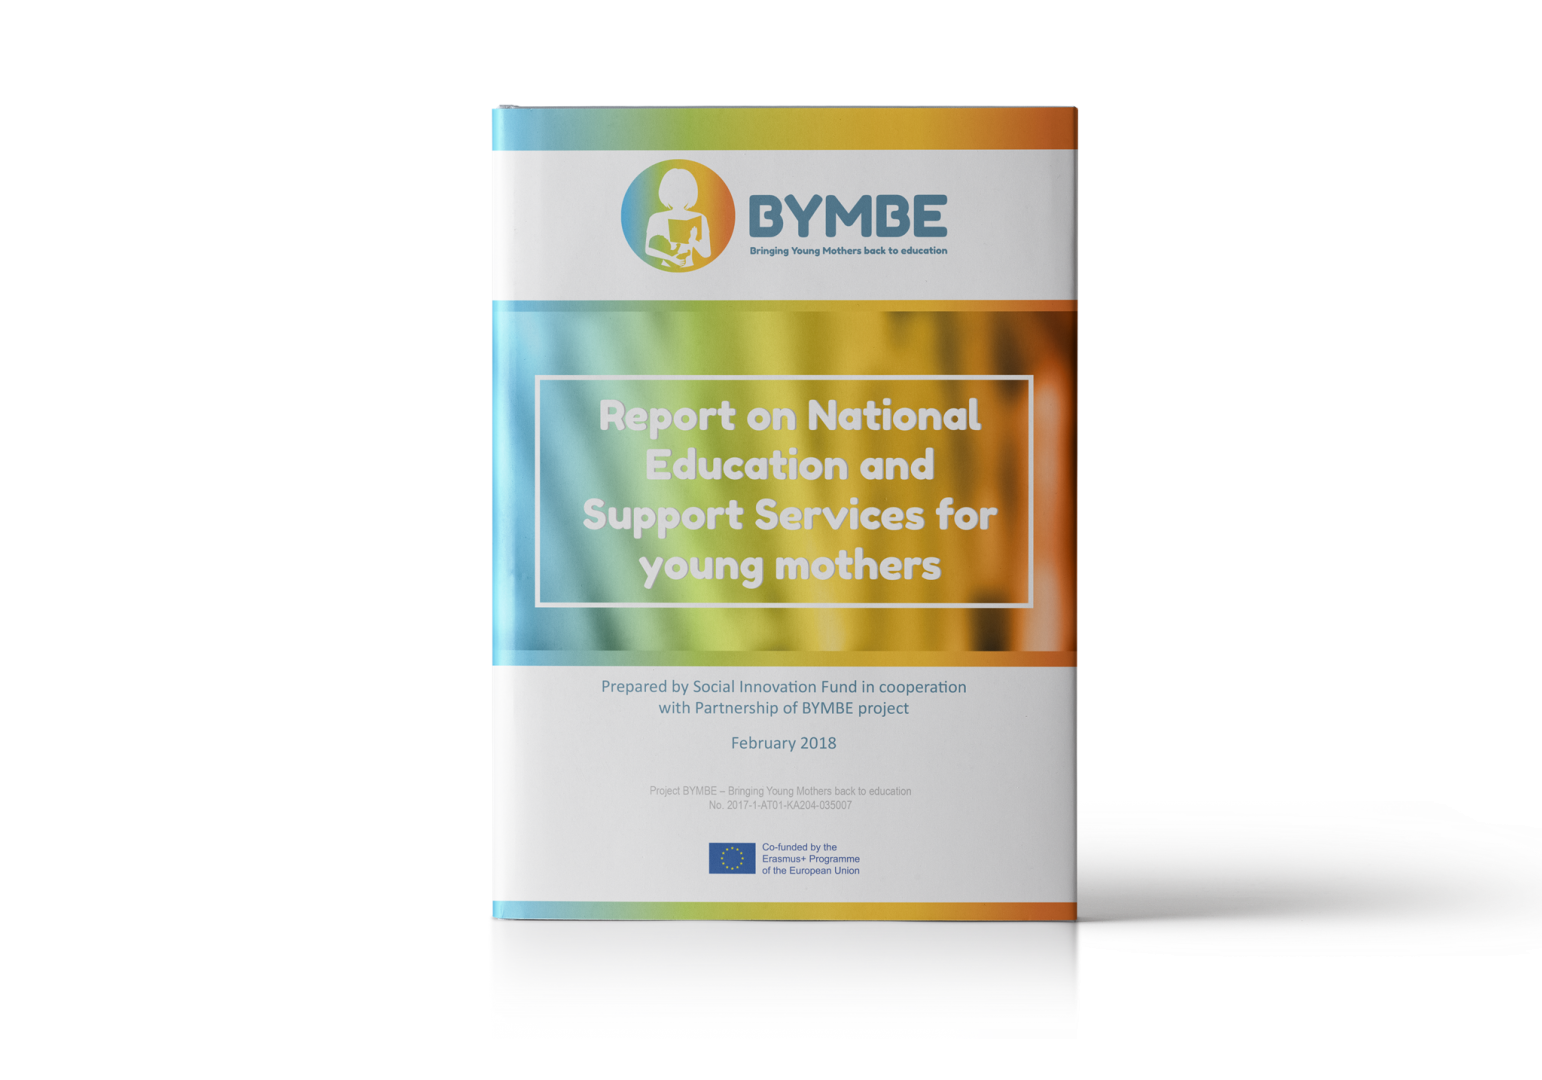 BYMBE: Report on National Education and Support Services for young mothers